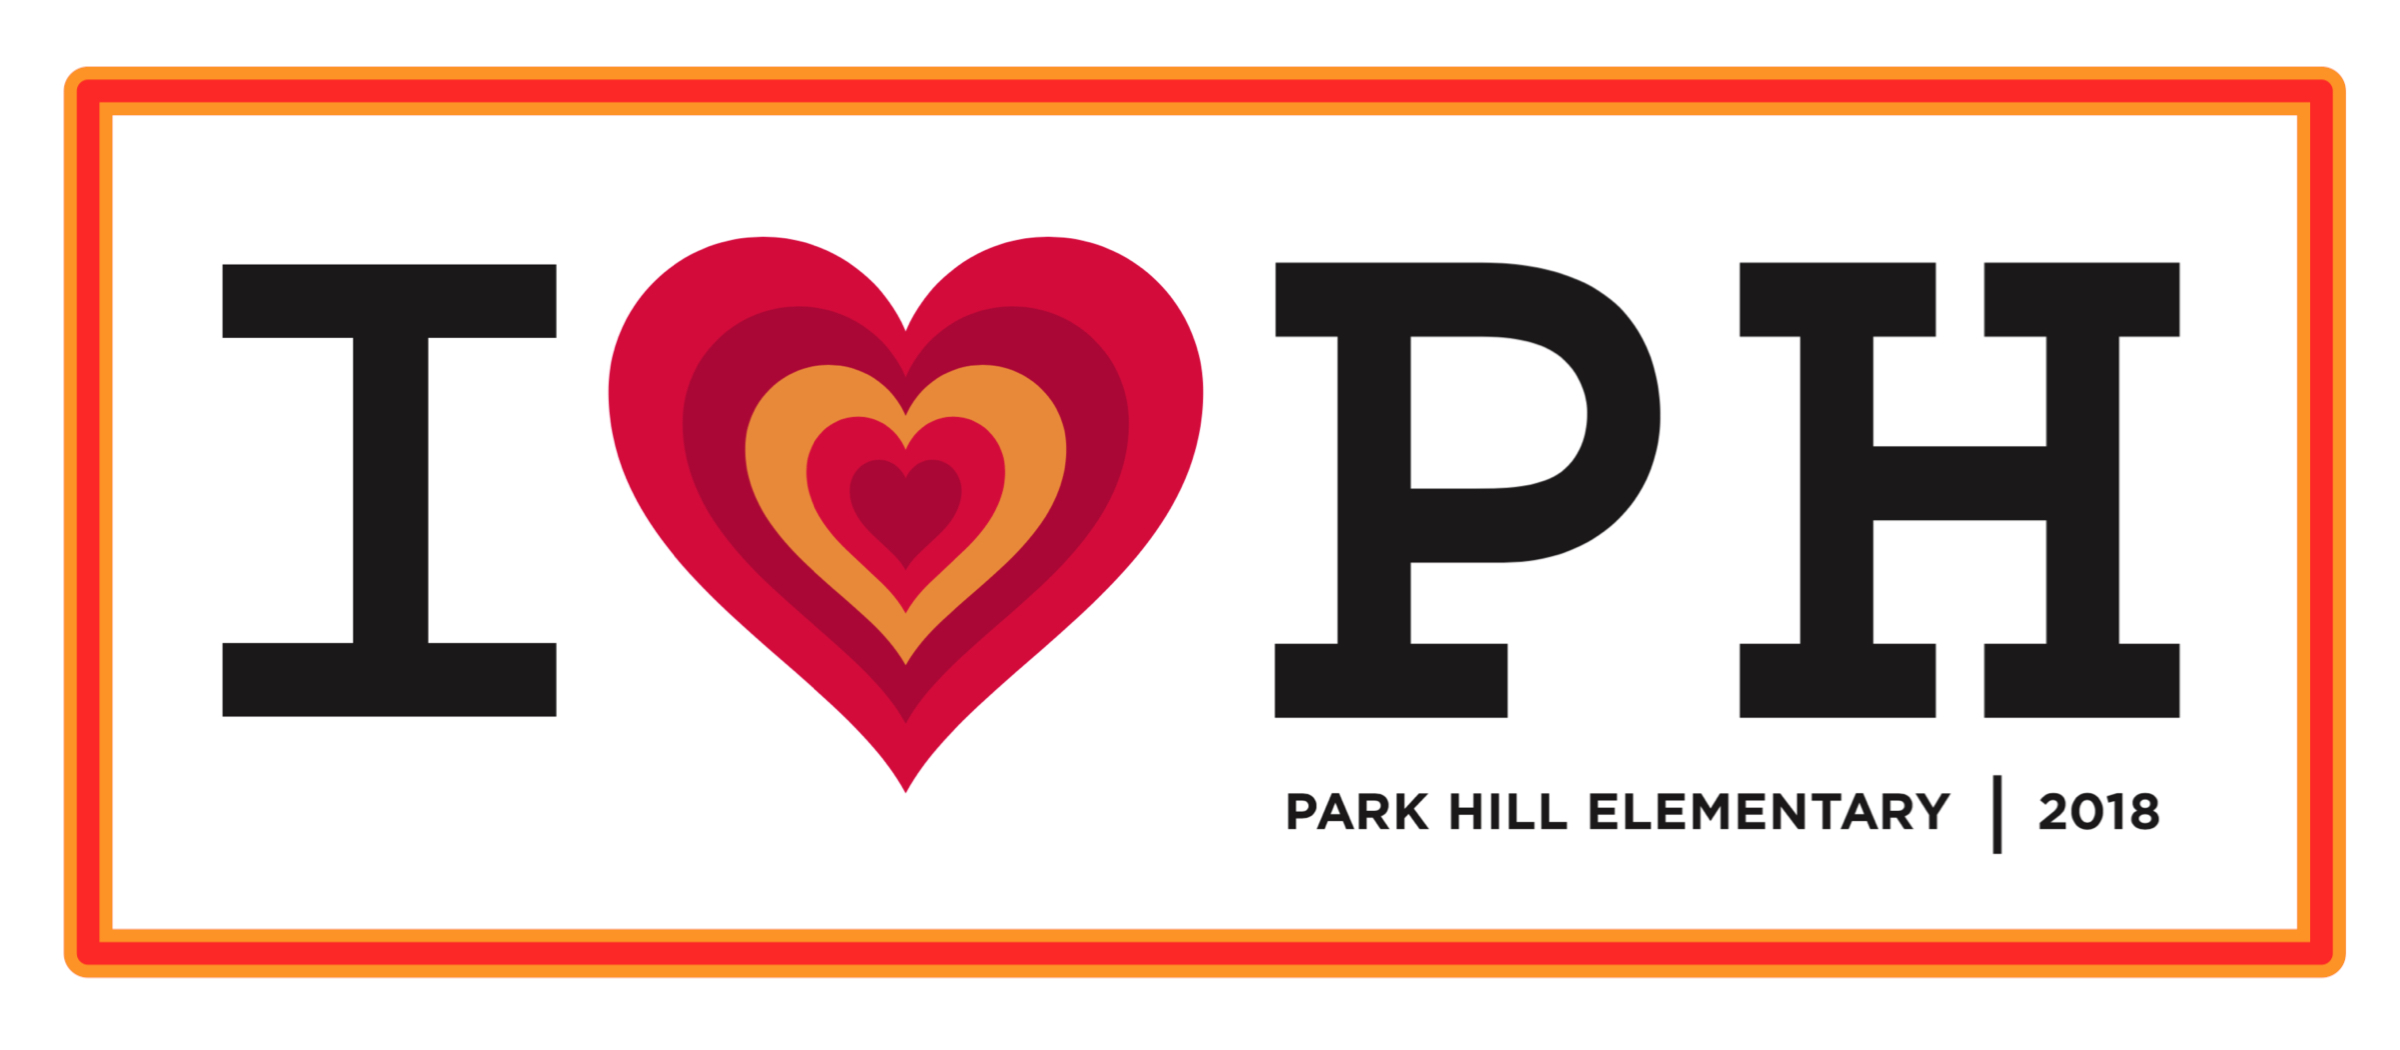 I Heart Park Hill 2018 Web Site